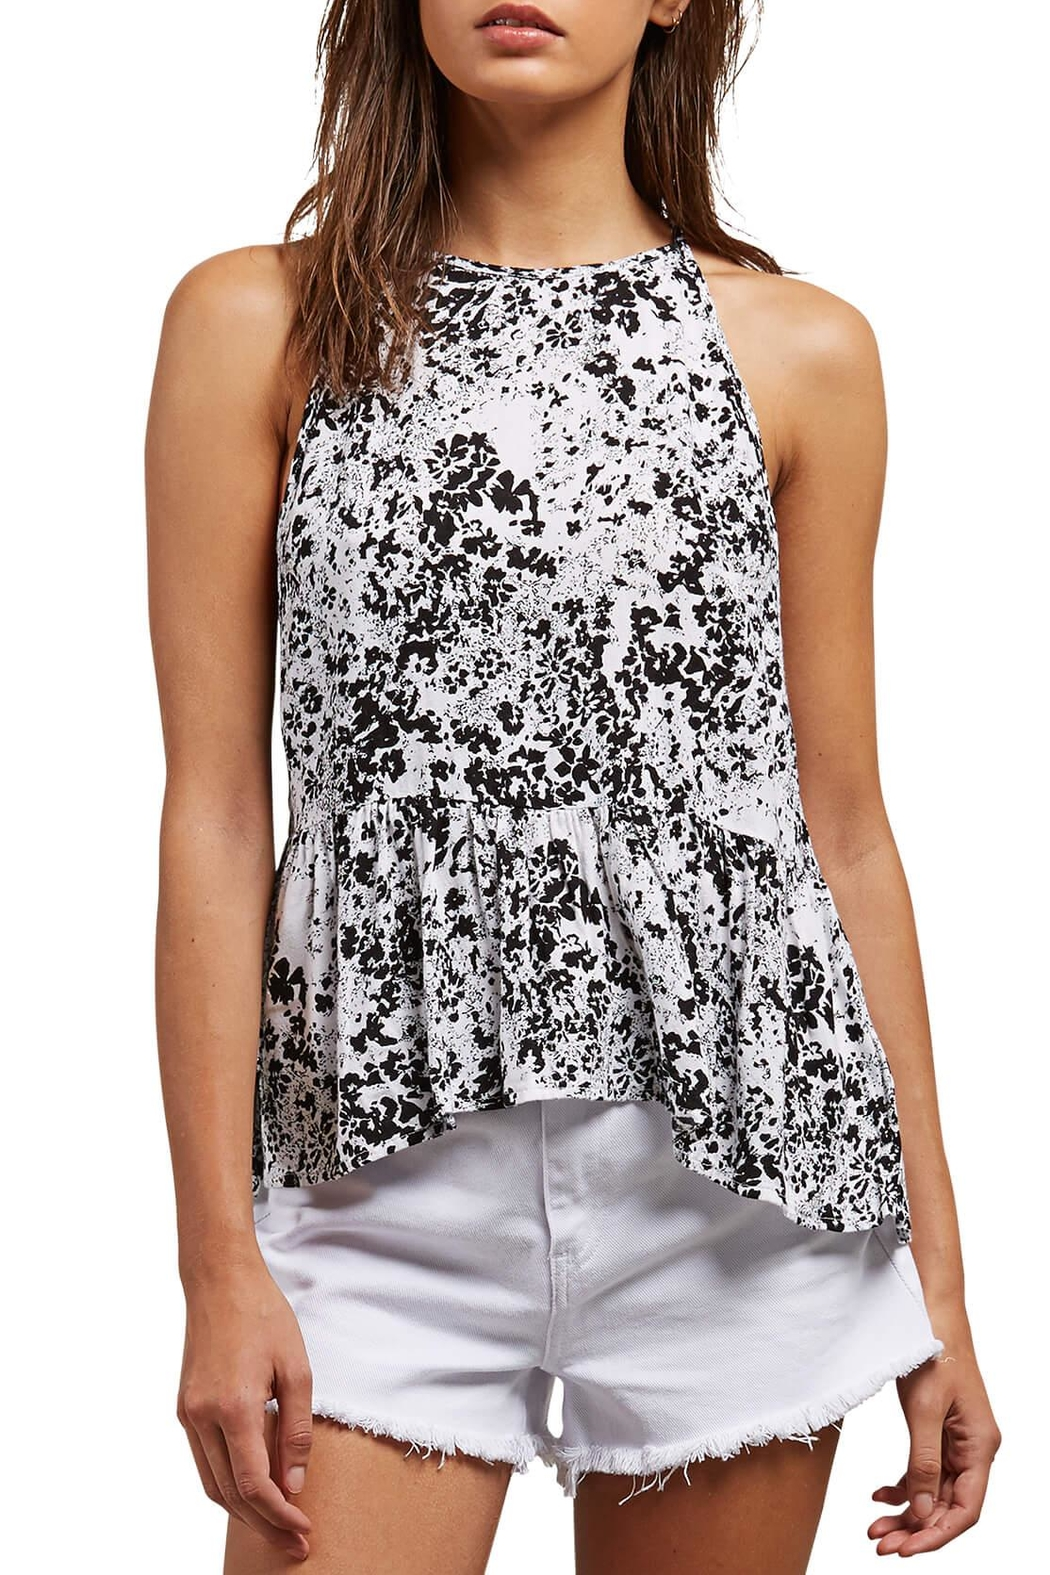 Volcom Black Floral Tank - Front Cropped Image